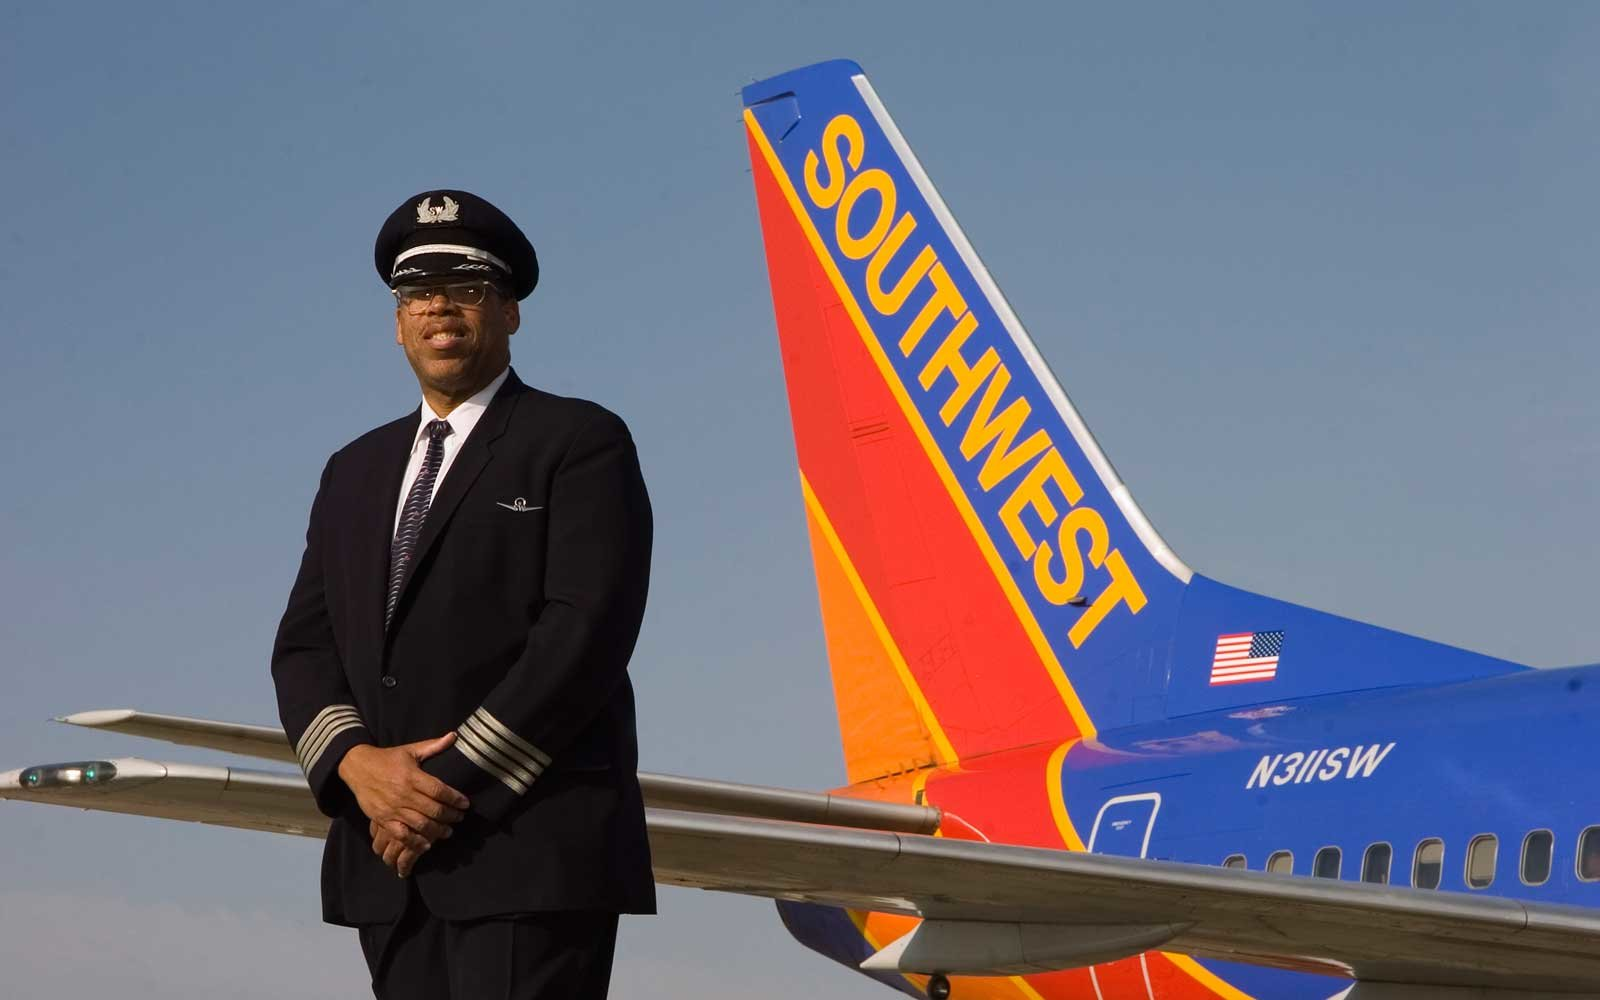 Southwest S First Black Pilot Talks About How The Industry